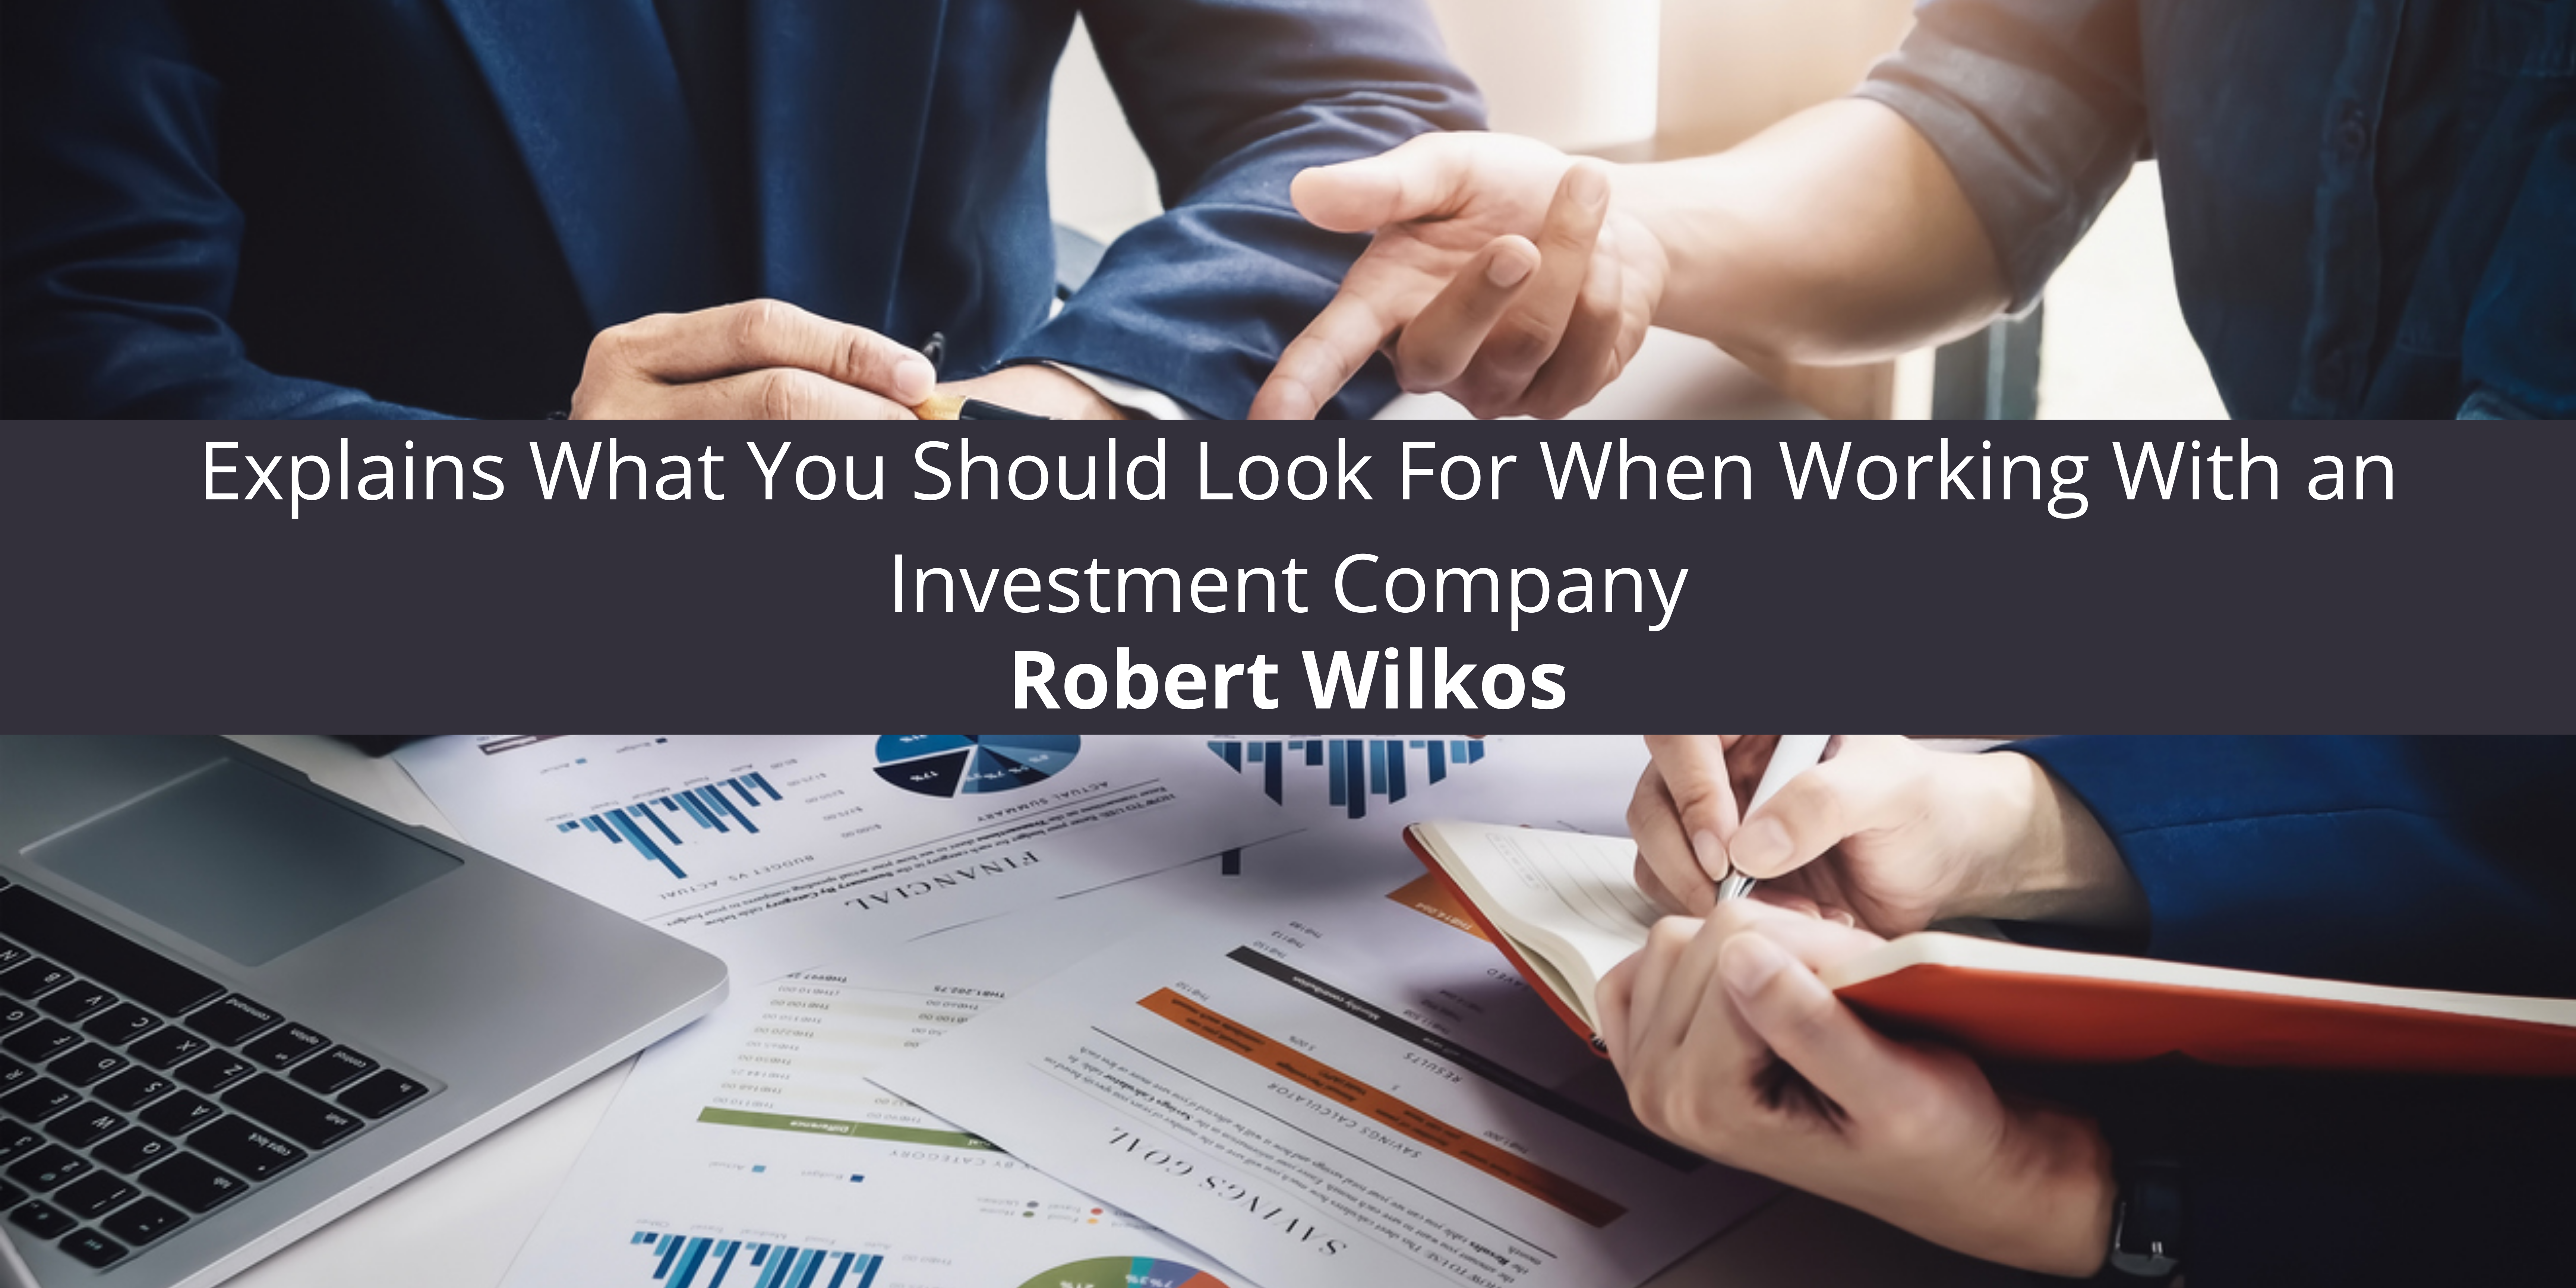 Explains What You Should Look For When Working With an Investment Company